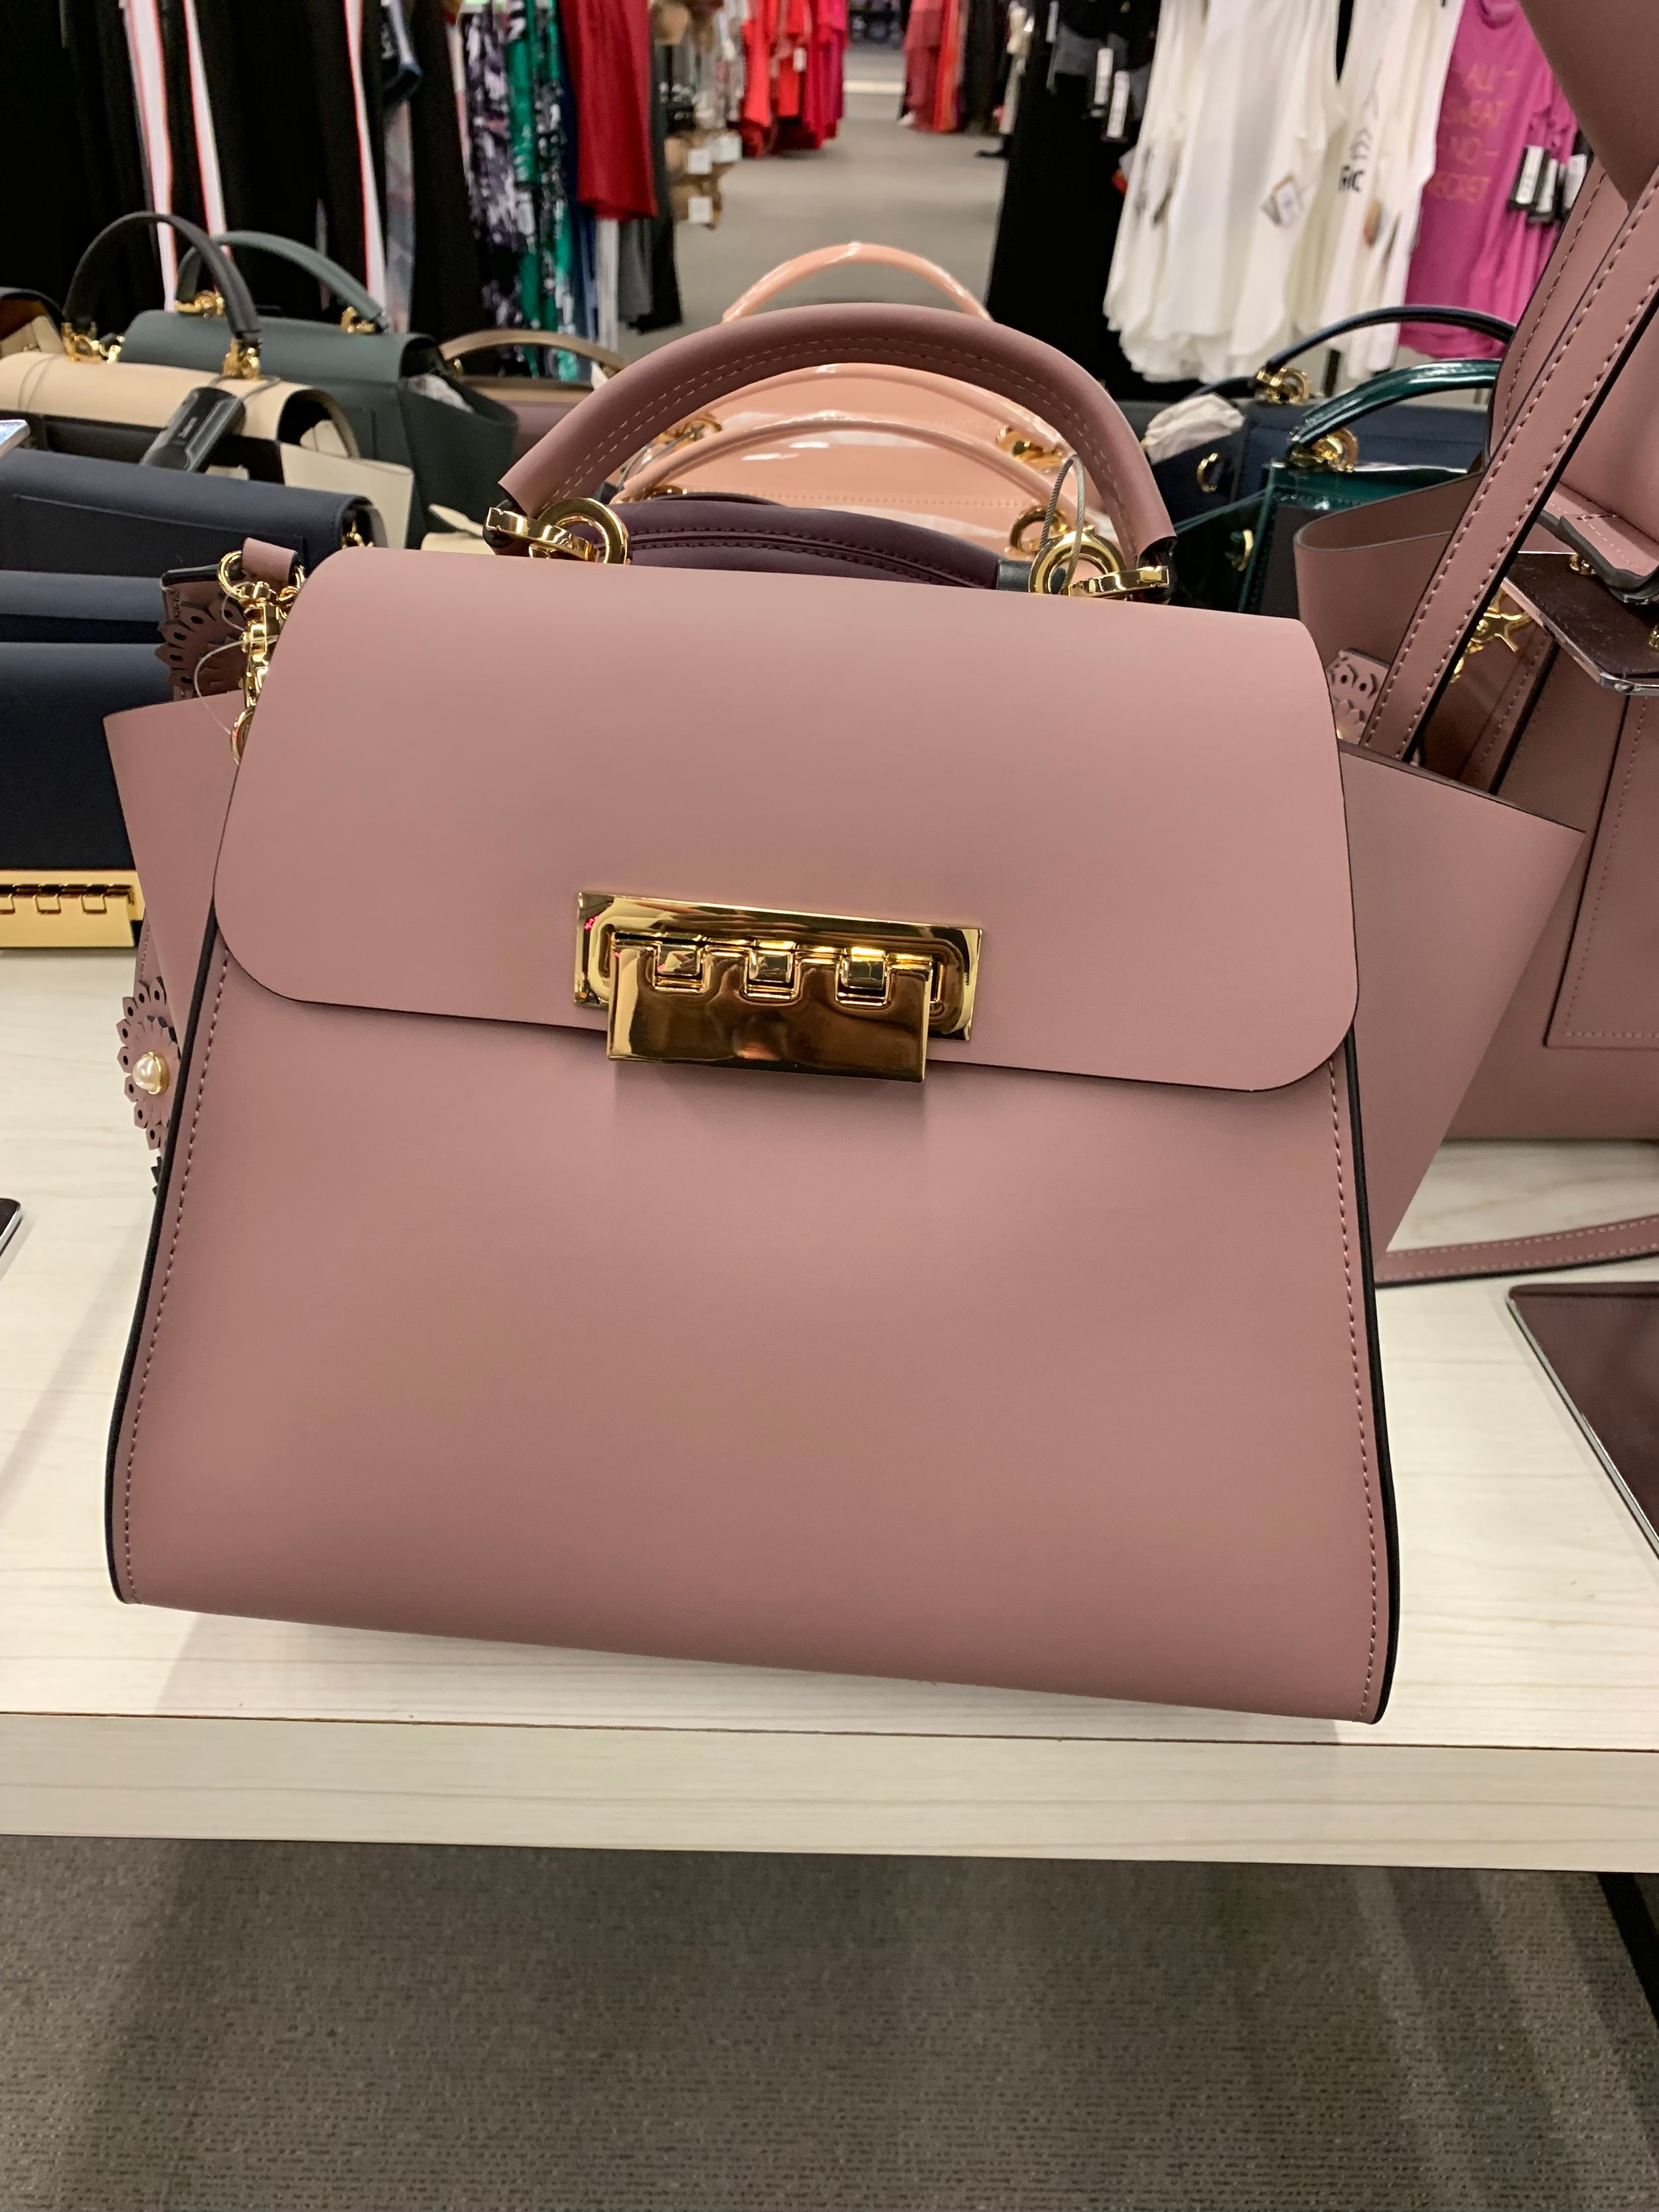 Mothers Day Gift Ideas. Zac Posen Bag at Saks Off 5th also $249